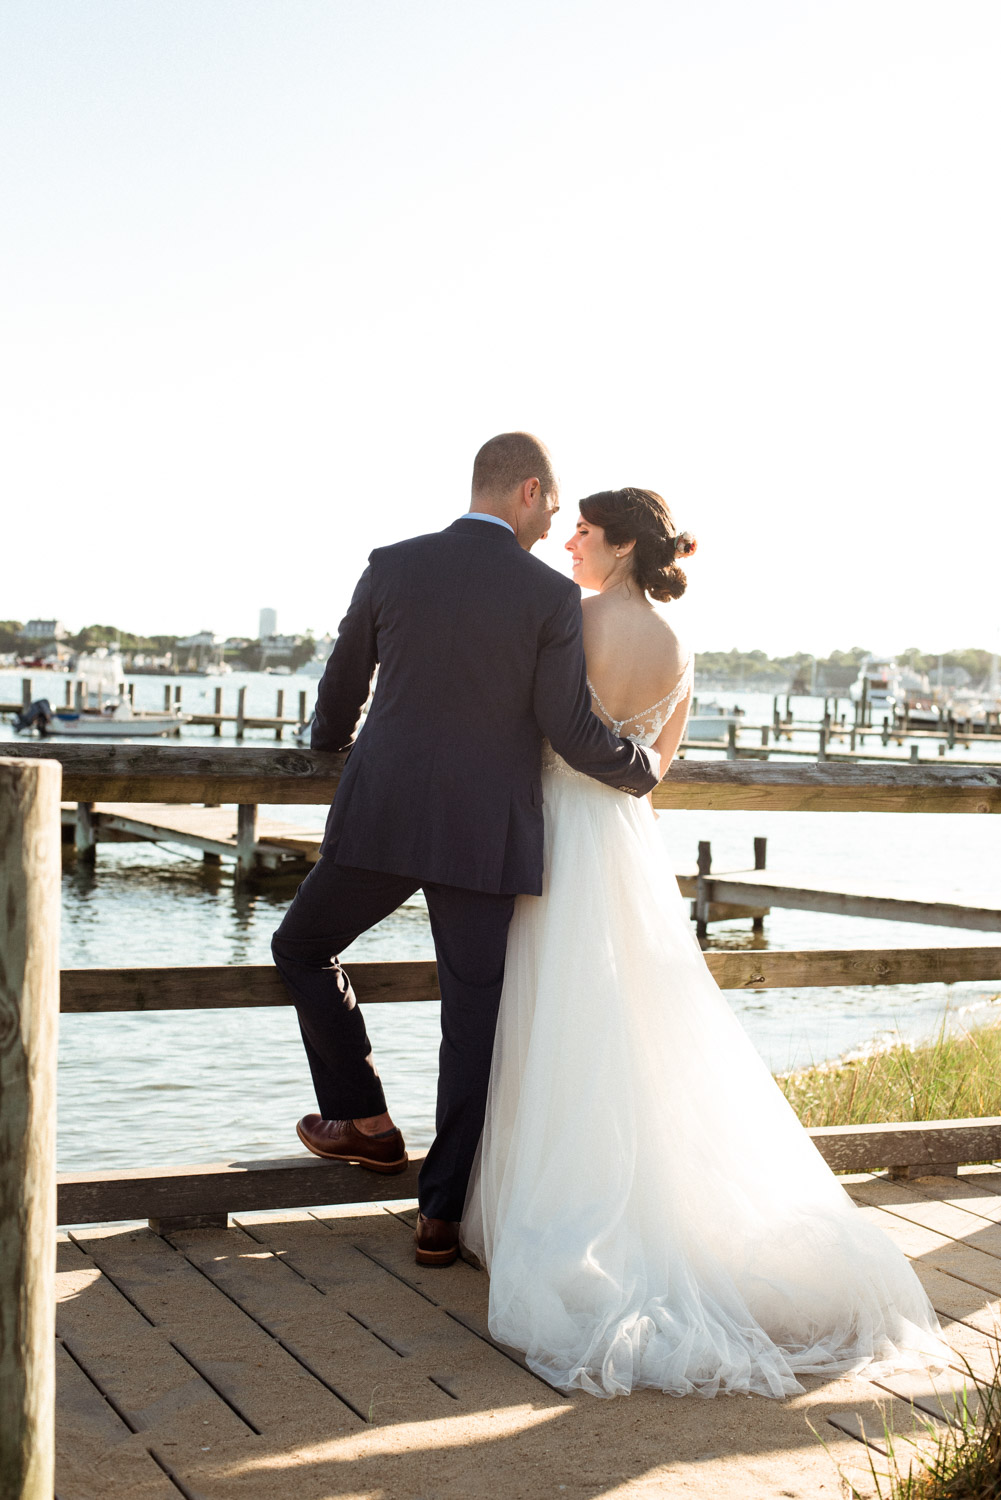 Alex & Marc - Edgartown, MAVenue: Harbor View HotelFloral: Morrice Florist